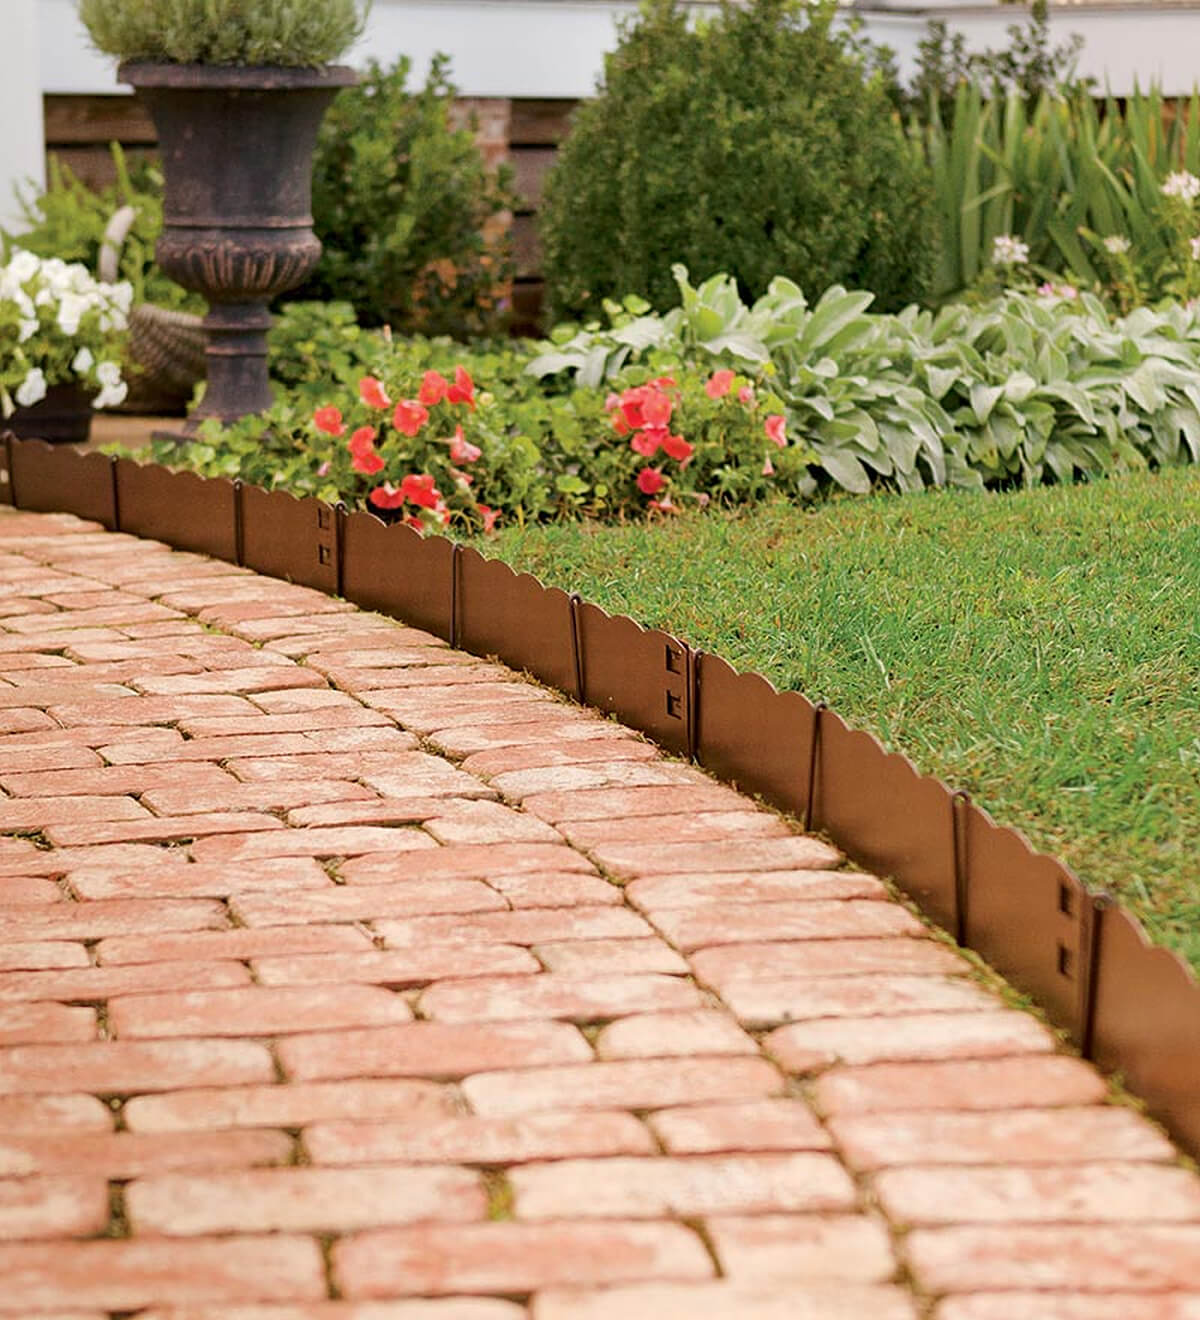 Short Scalloped Copper Edge Along Brick Path